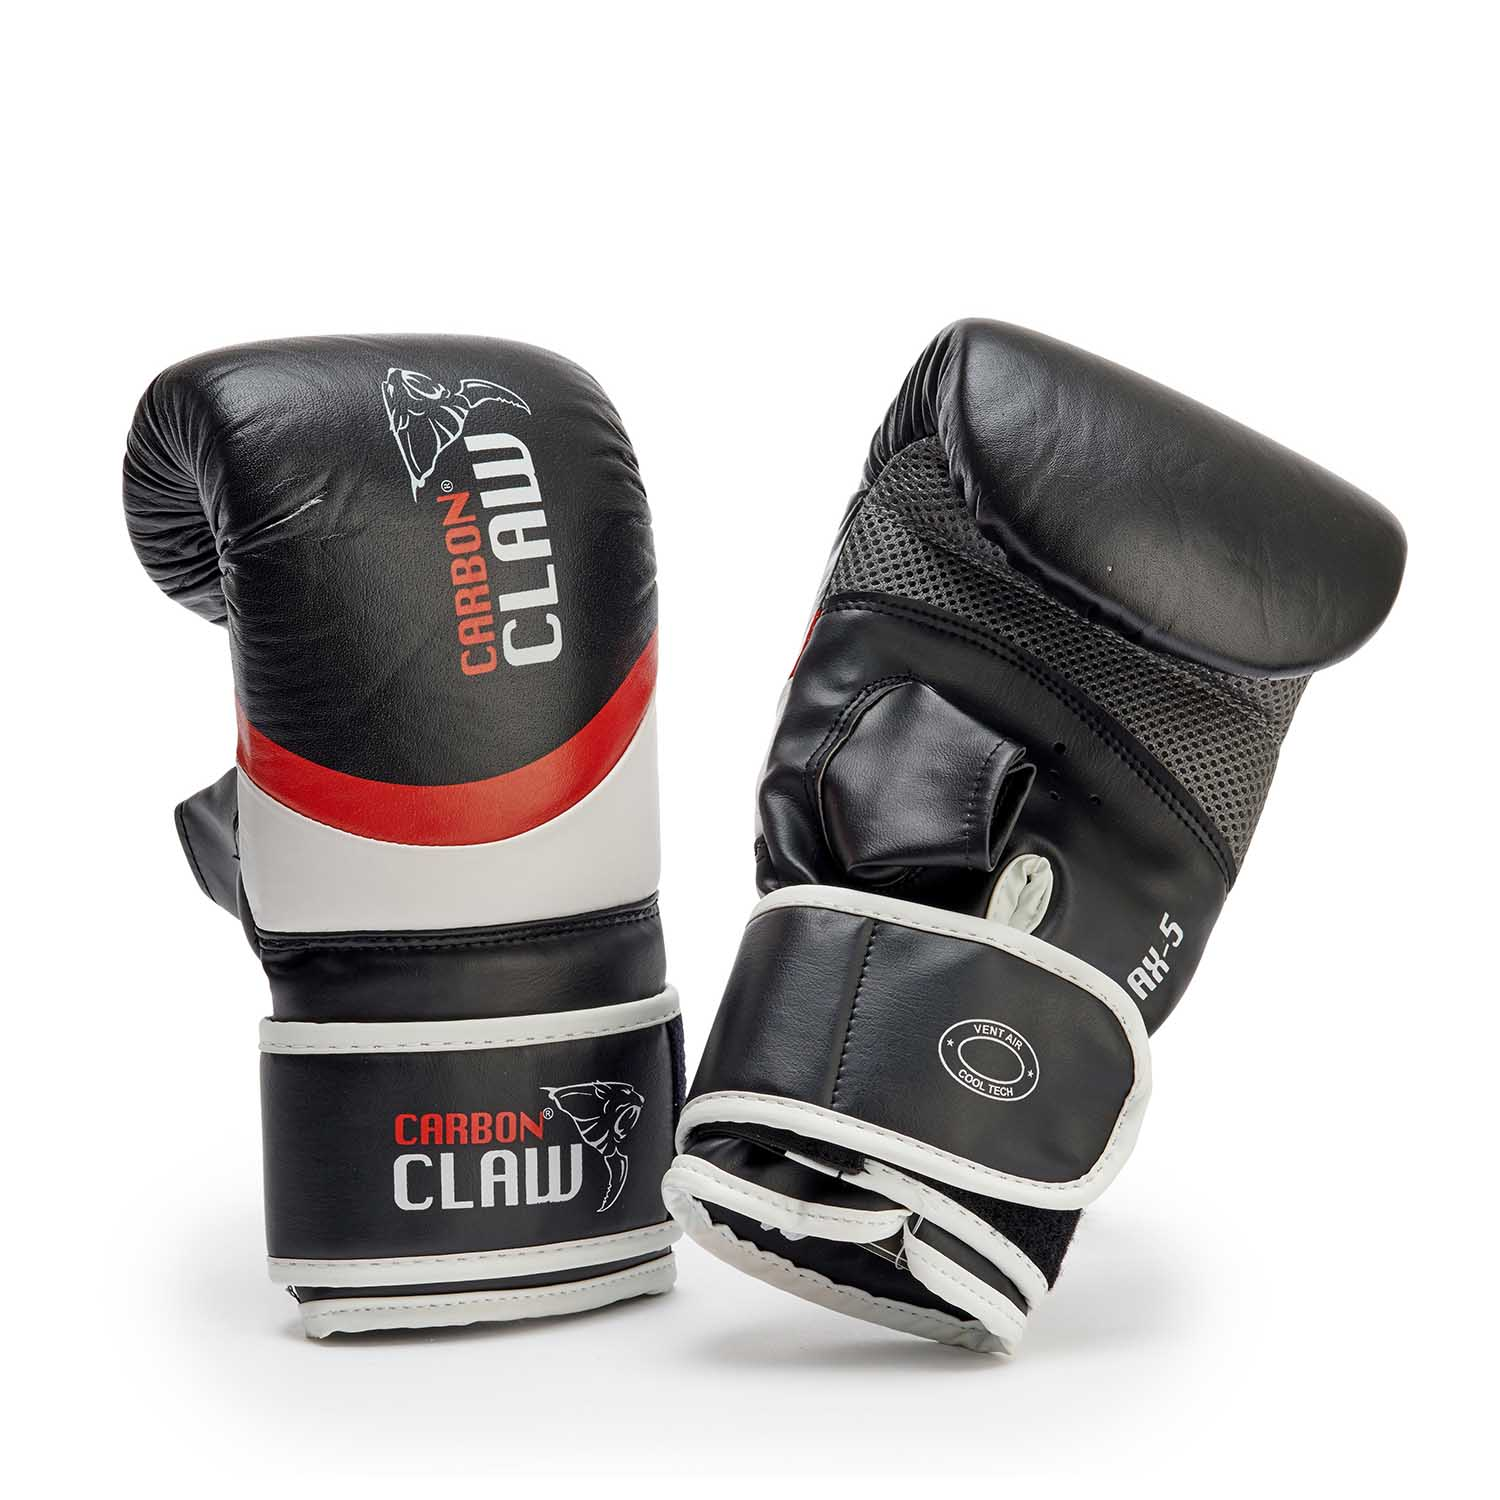 Image of Carbon Claw Aero AX-5 Leather Bag Mitts